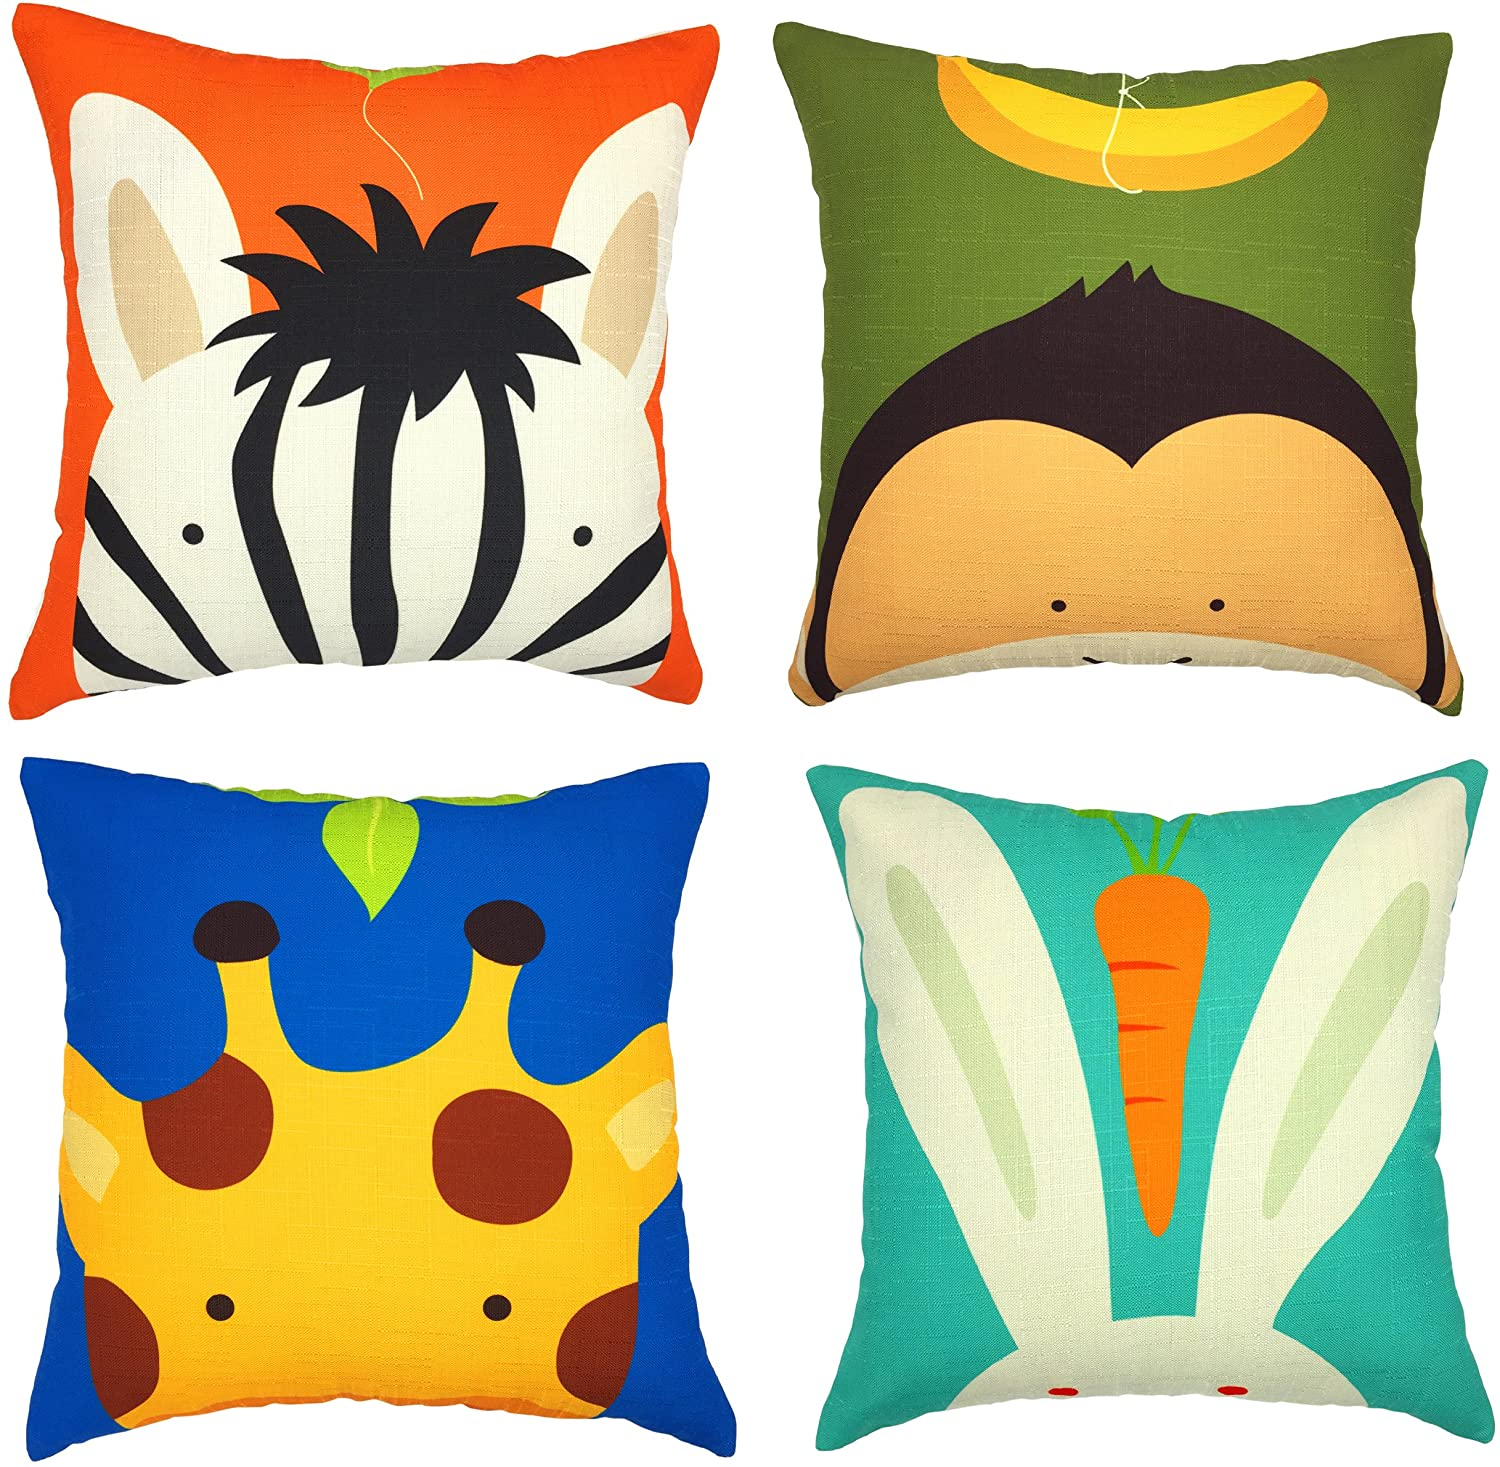 YOUR SMILE Children Series Cotton Linen Cute Animal Decorative Throw Pillow Case Cushion Cover Pillowcase for Sofa 18 x 18 Inch, Set of 4